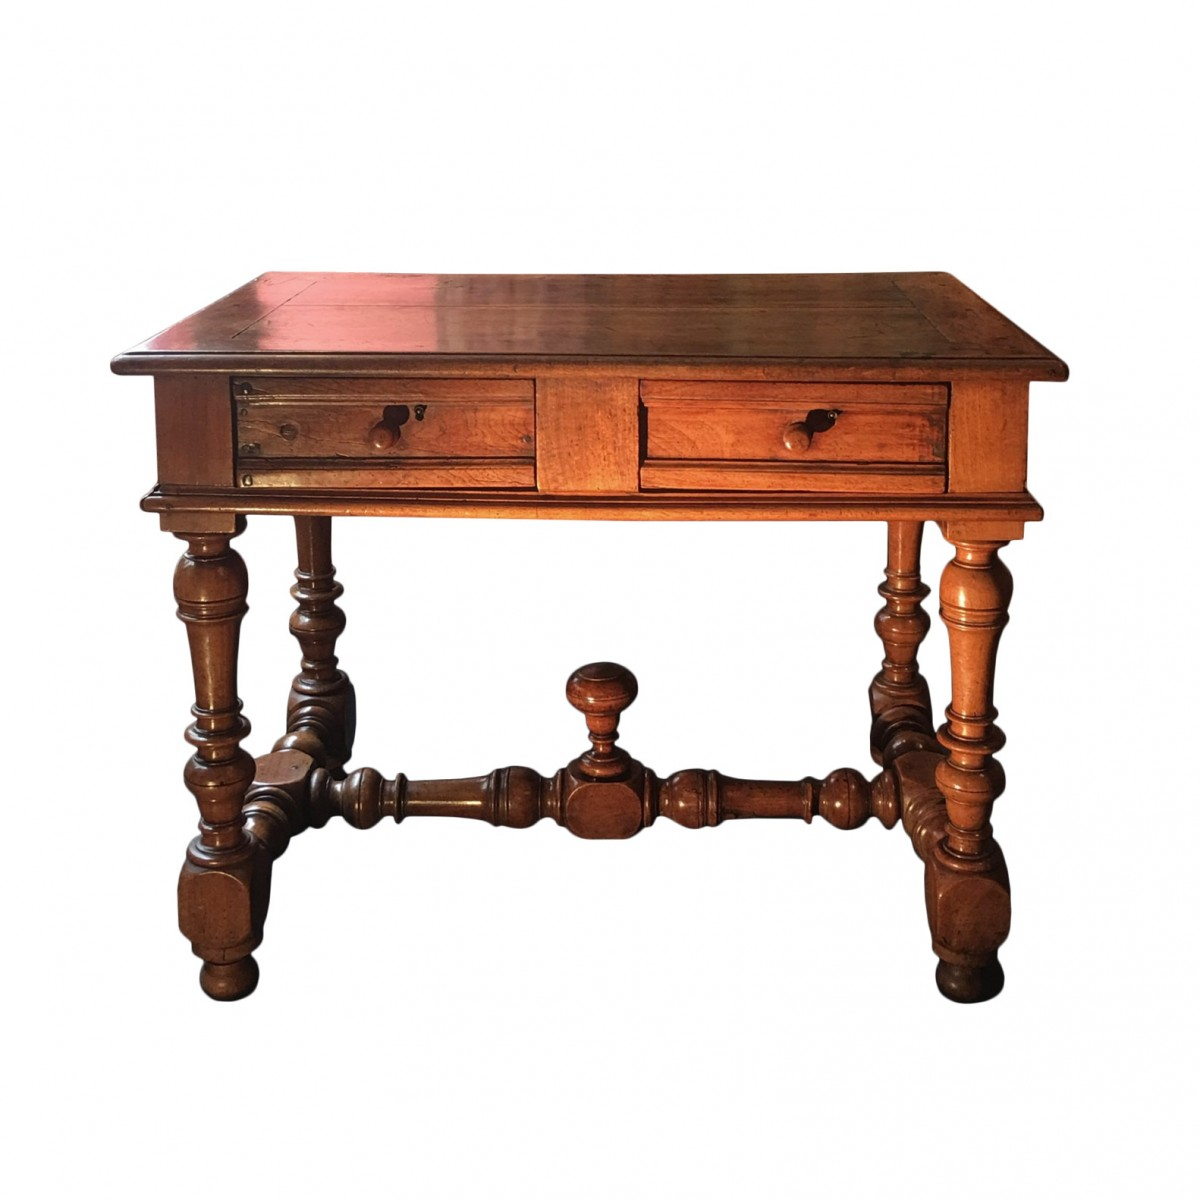 a louis xiii table. Black Bedroom Furniture Sets. Home Design Ideas